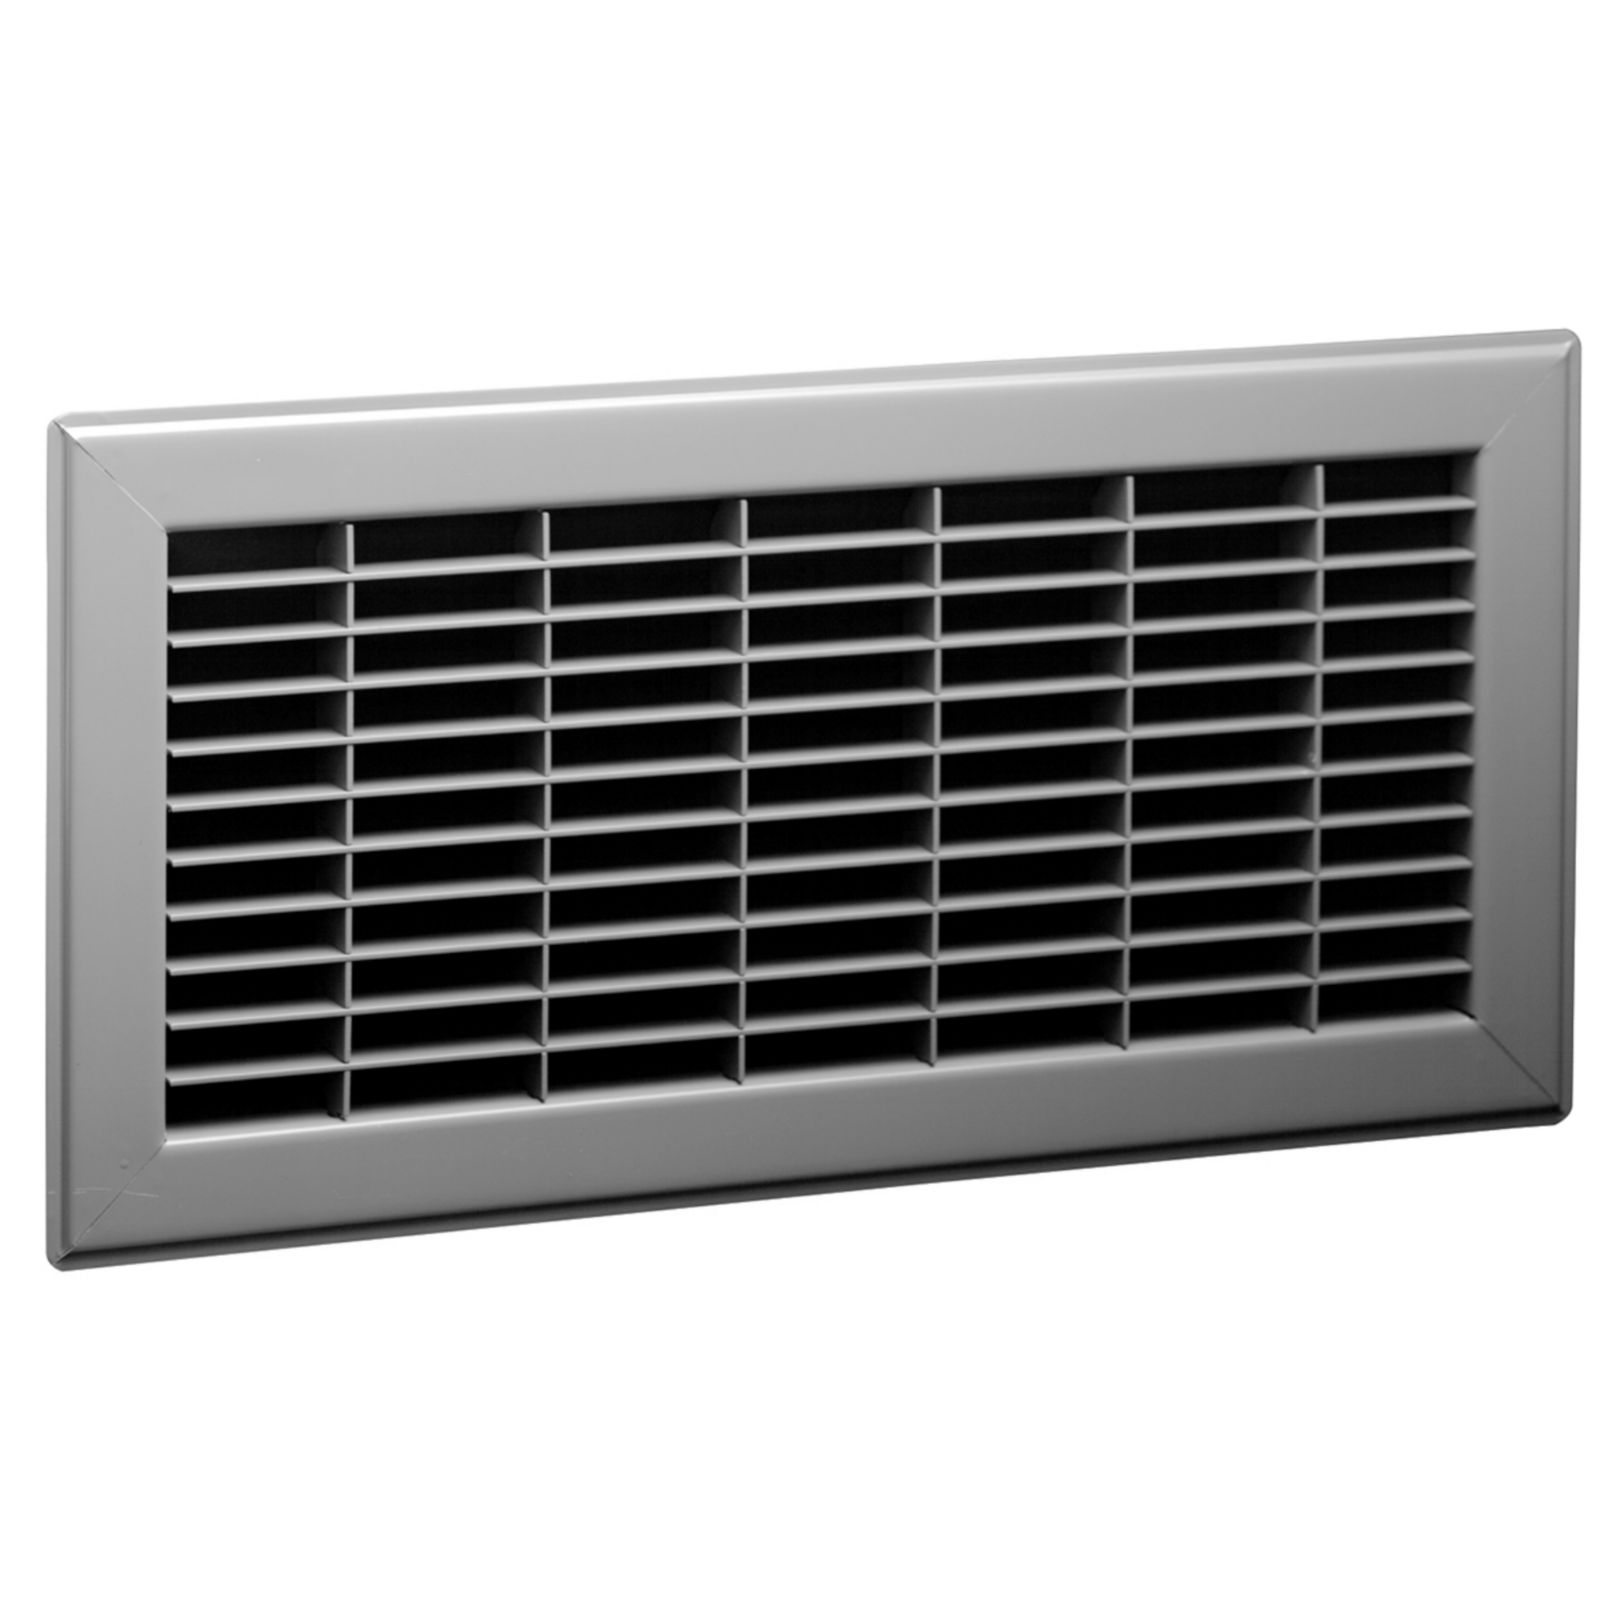 "Lima 16966 - #825 Return Floor Grille, Brown Finish, 20"" X 14"""